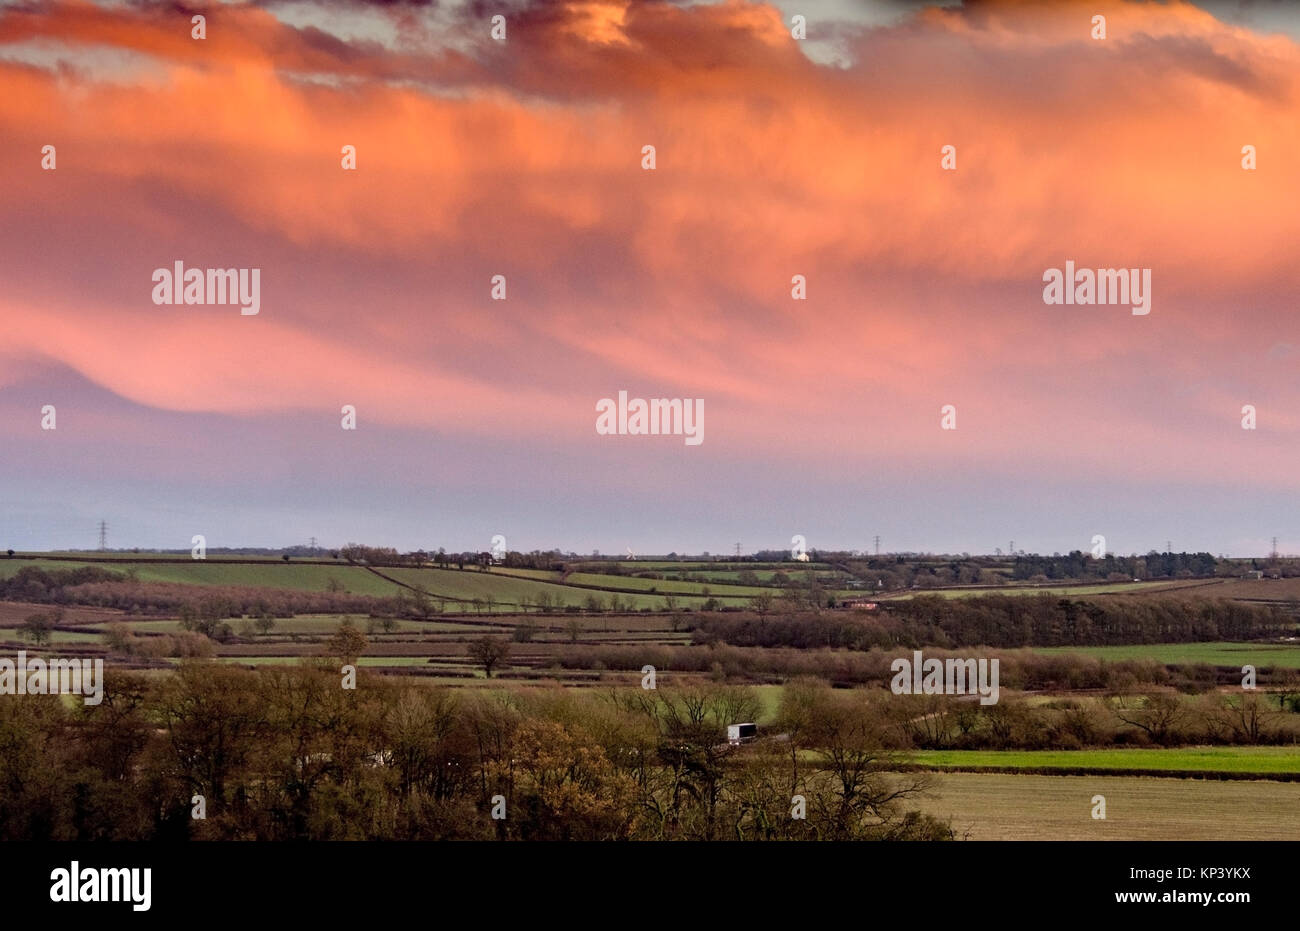 Melton Mowbray, UK. 13th December, 2017. Red sky full of drama after a cold day. Credit: Clifford Norton/Alamy Live - Stock Image